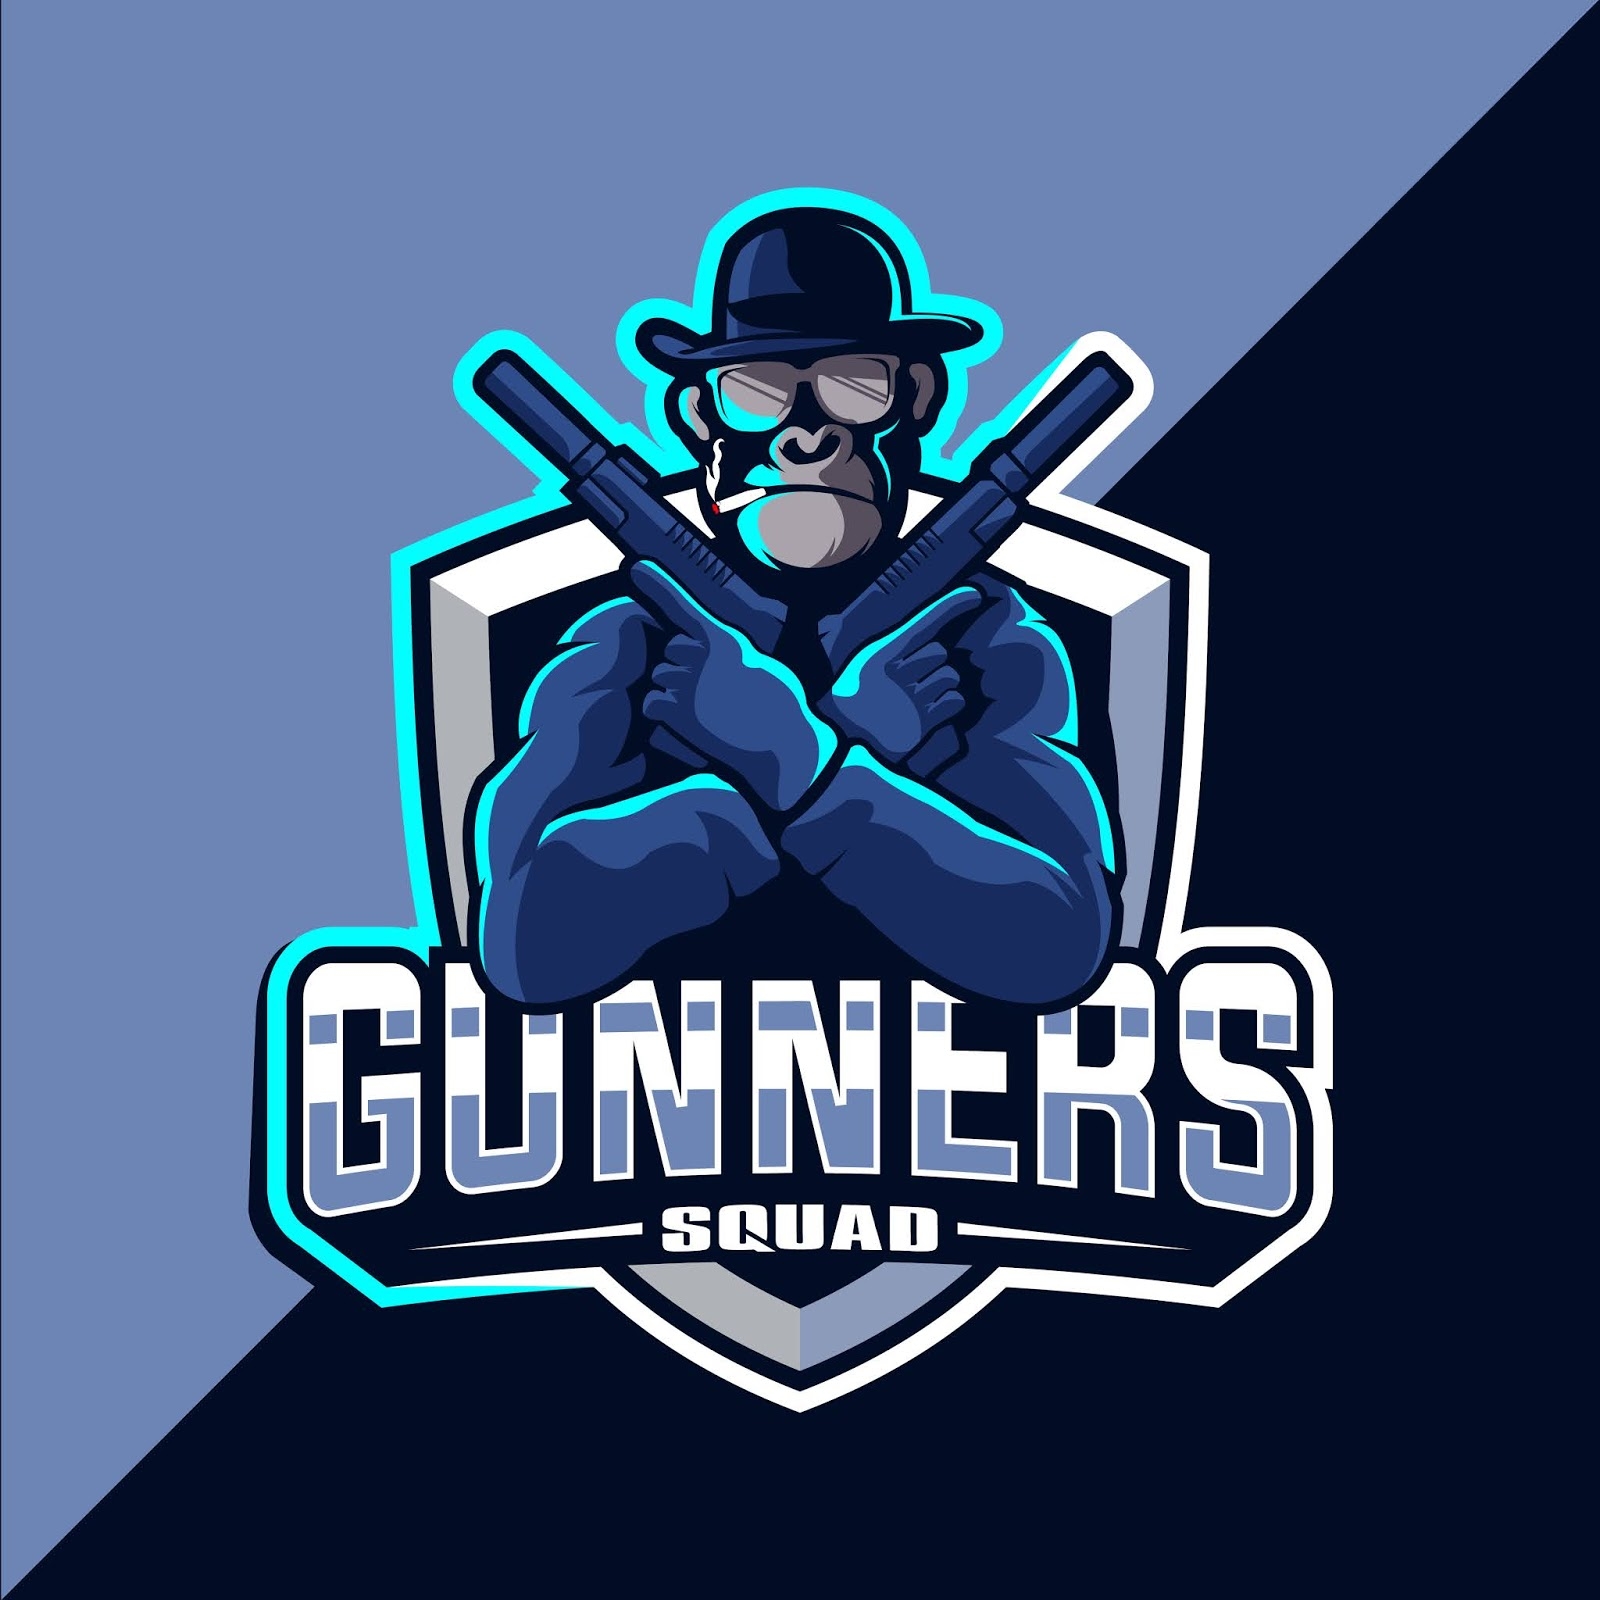 Monkey With Gun Esport Mascot Logo Free Download Vector CDR, AI, EPS and PNG Formats